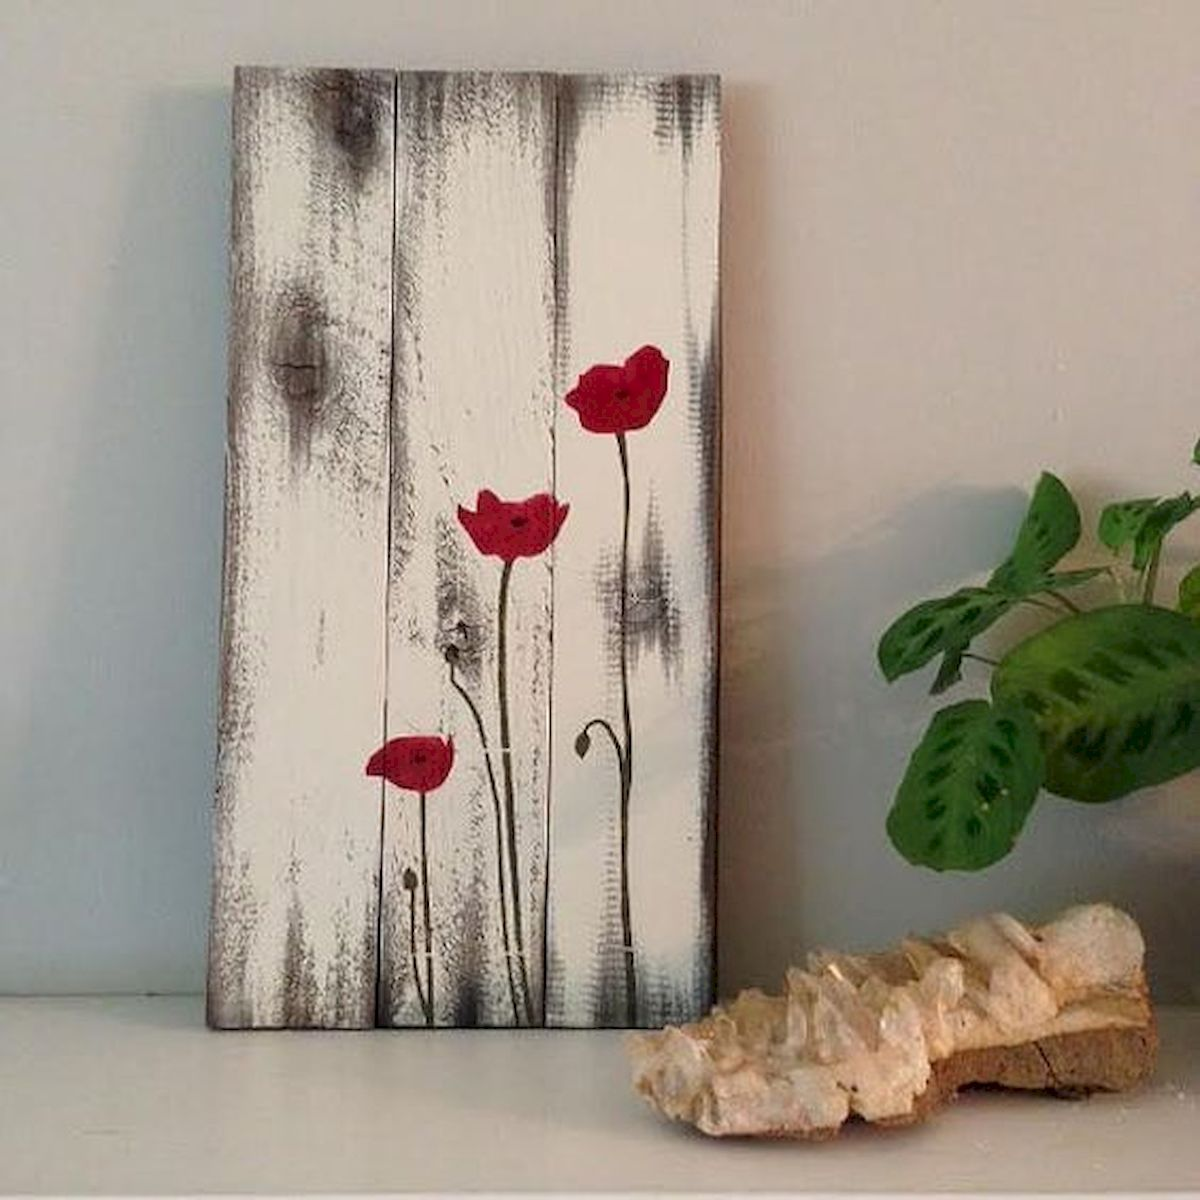 75 Romantic Valentines Day Crafts Design Ideas is part of Wall art diy easy, Diy wall art, Wood art, Poppy painting, Pallet painting, Crafts - For the most romantic day in the year, Valentine's Day we have selected interesting diy crafts  Be creative for the Valentine's Day and give cute gifts to your loved ones  The gift would have bigger meaning if you make it… Continue Reading →